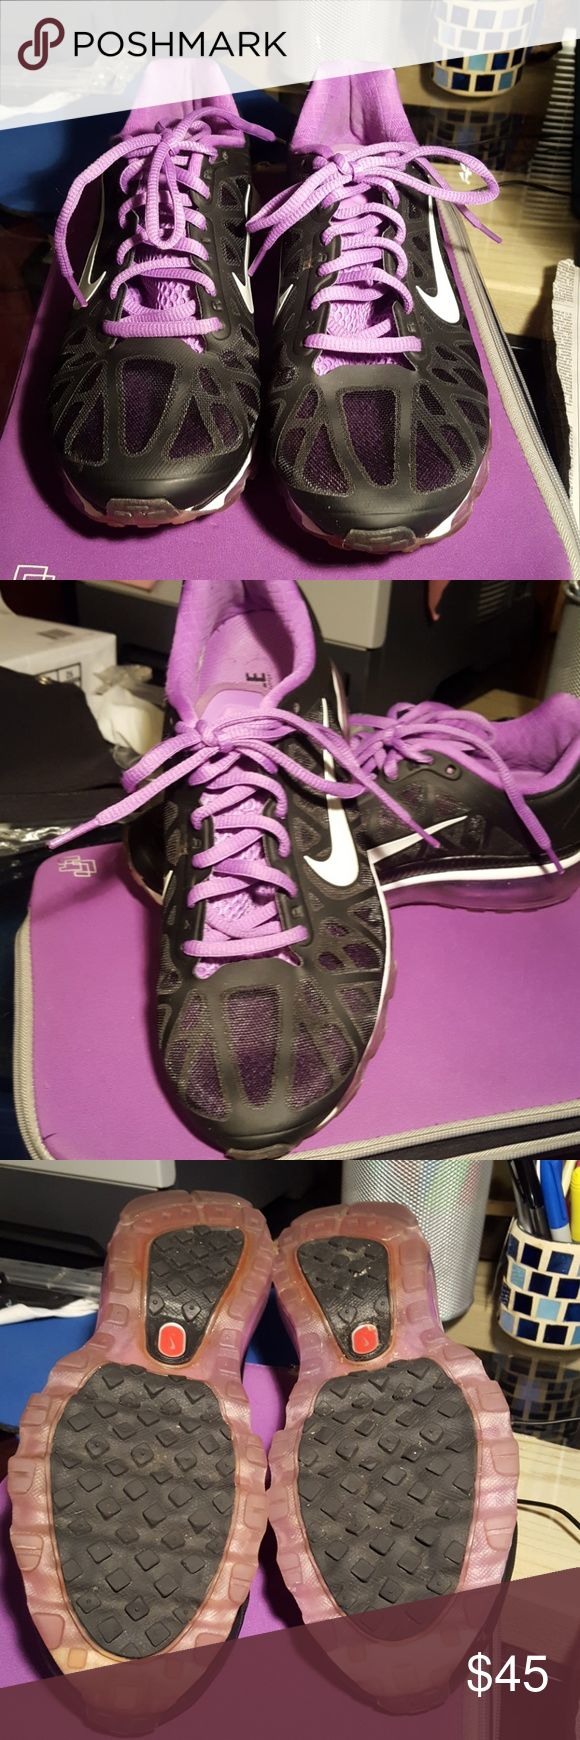 Nike Air Max sneakers These are gently used women's Nike Air Max. Color is Black Metallic Platinum Bright Violet. Nike Shoes Sneakers